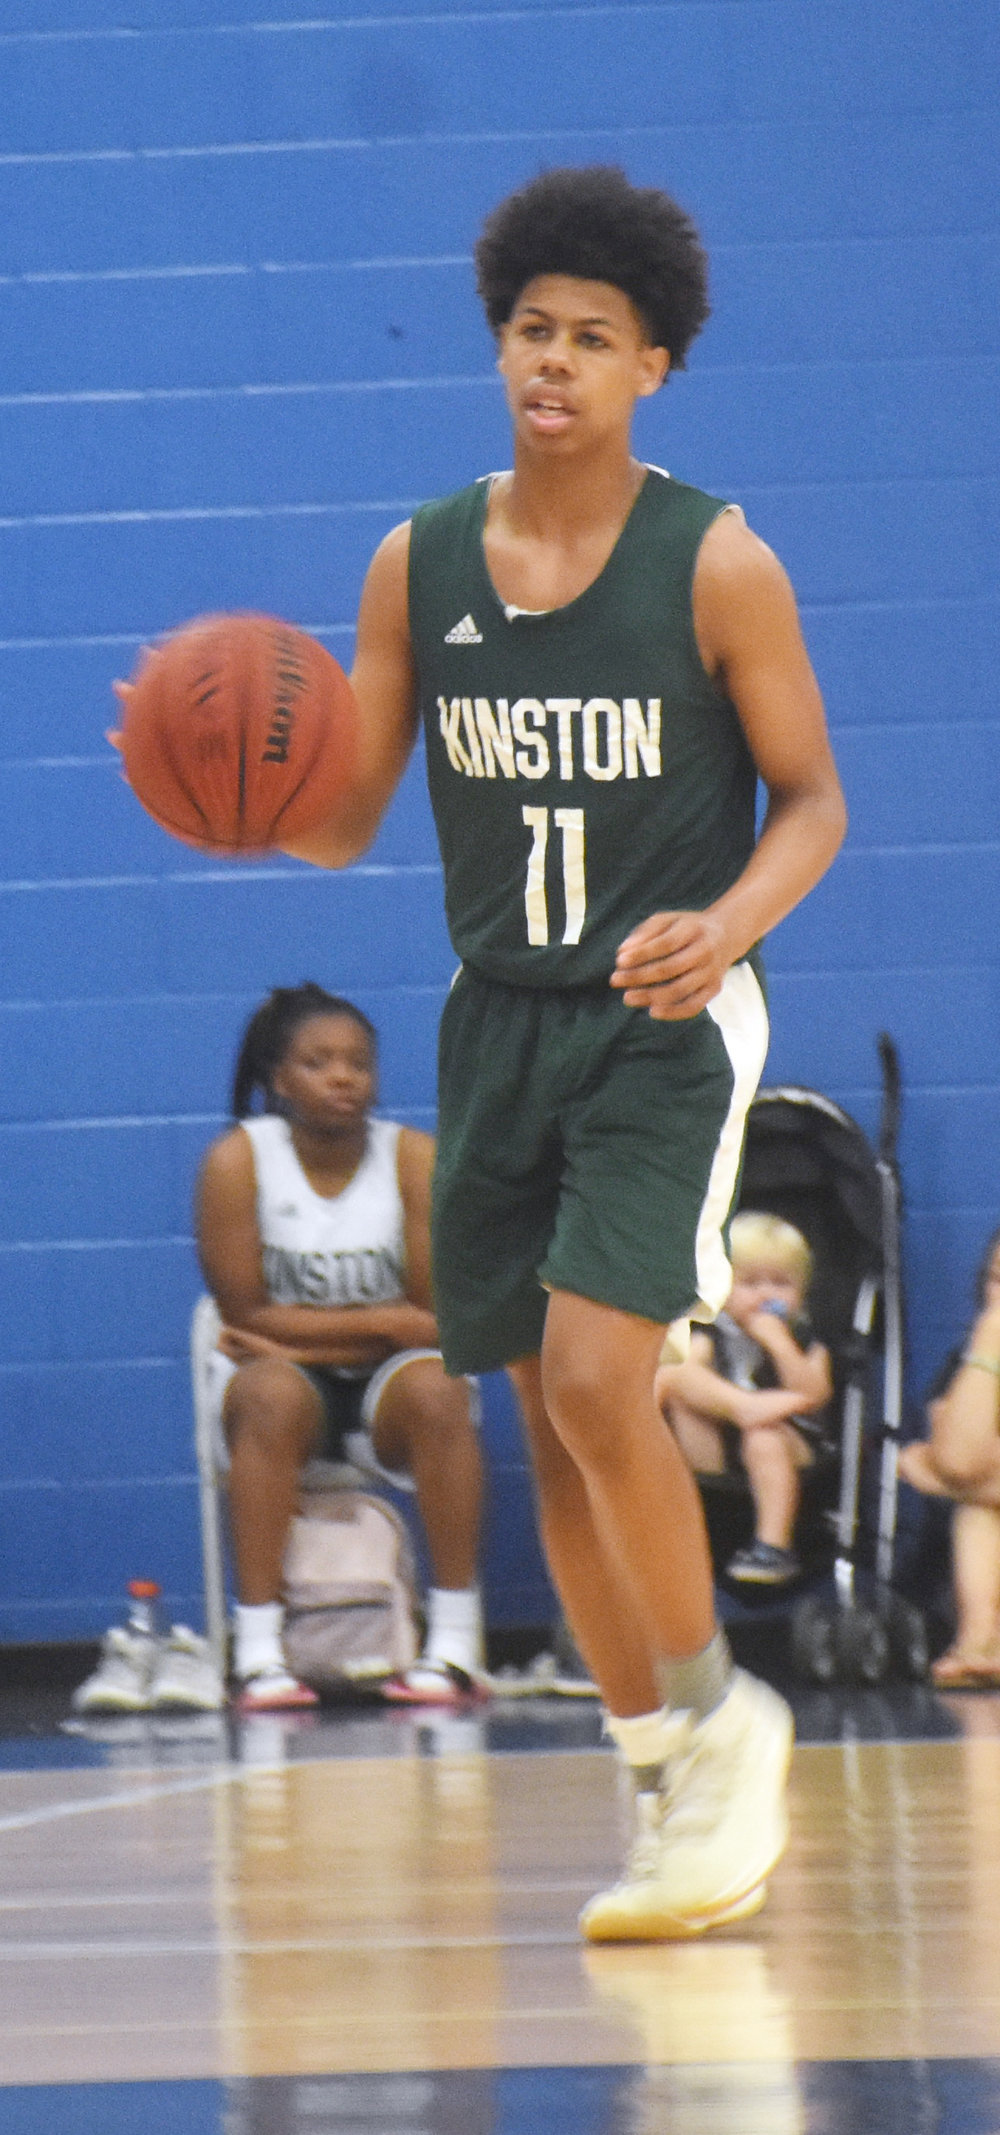 Kinston junior point guard Isaac Parson. Photo by Bryan Hanks / Neuse News